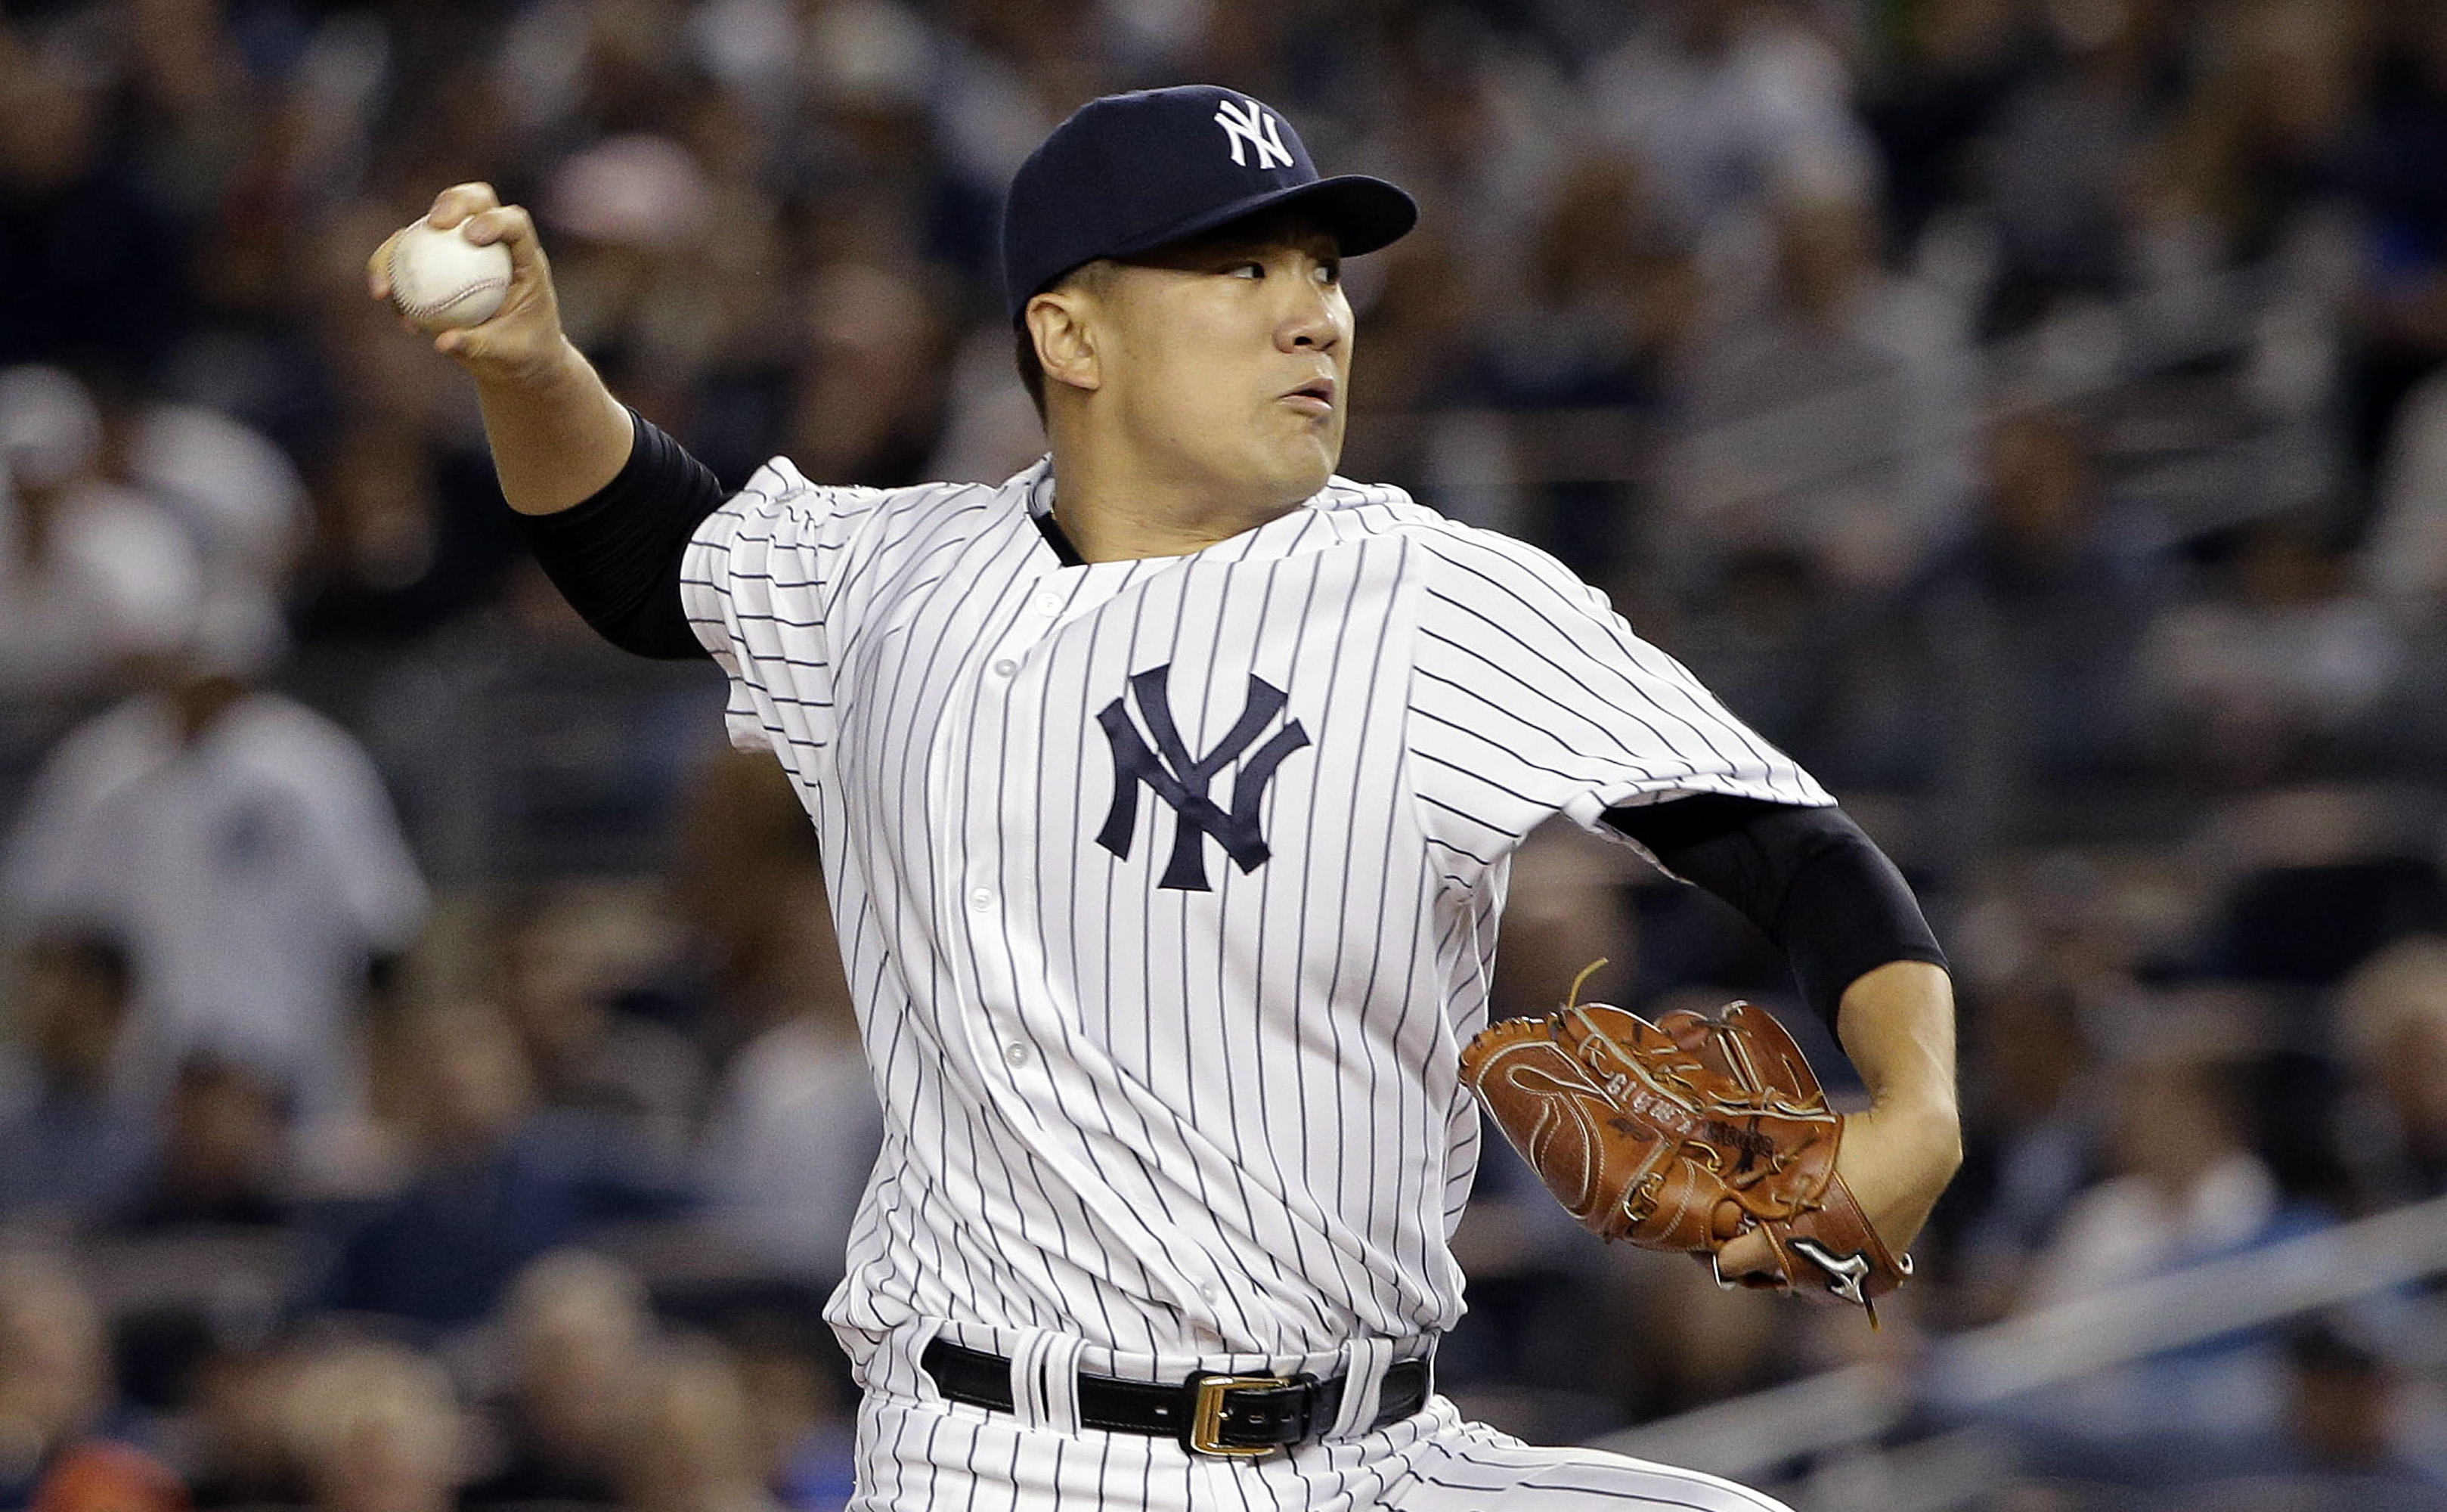 FILE - In this Tuesday, Oct. 6, 2015, file photo, New York Yankees pitcher Masahiro Tanaka delivers against the Houston Astros during the first inning of the American League wild card baseball game in New York. When Dallas Keuchel last took the mound at Y